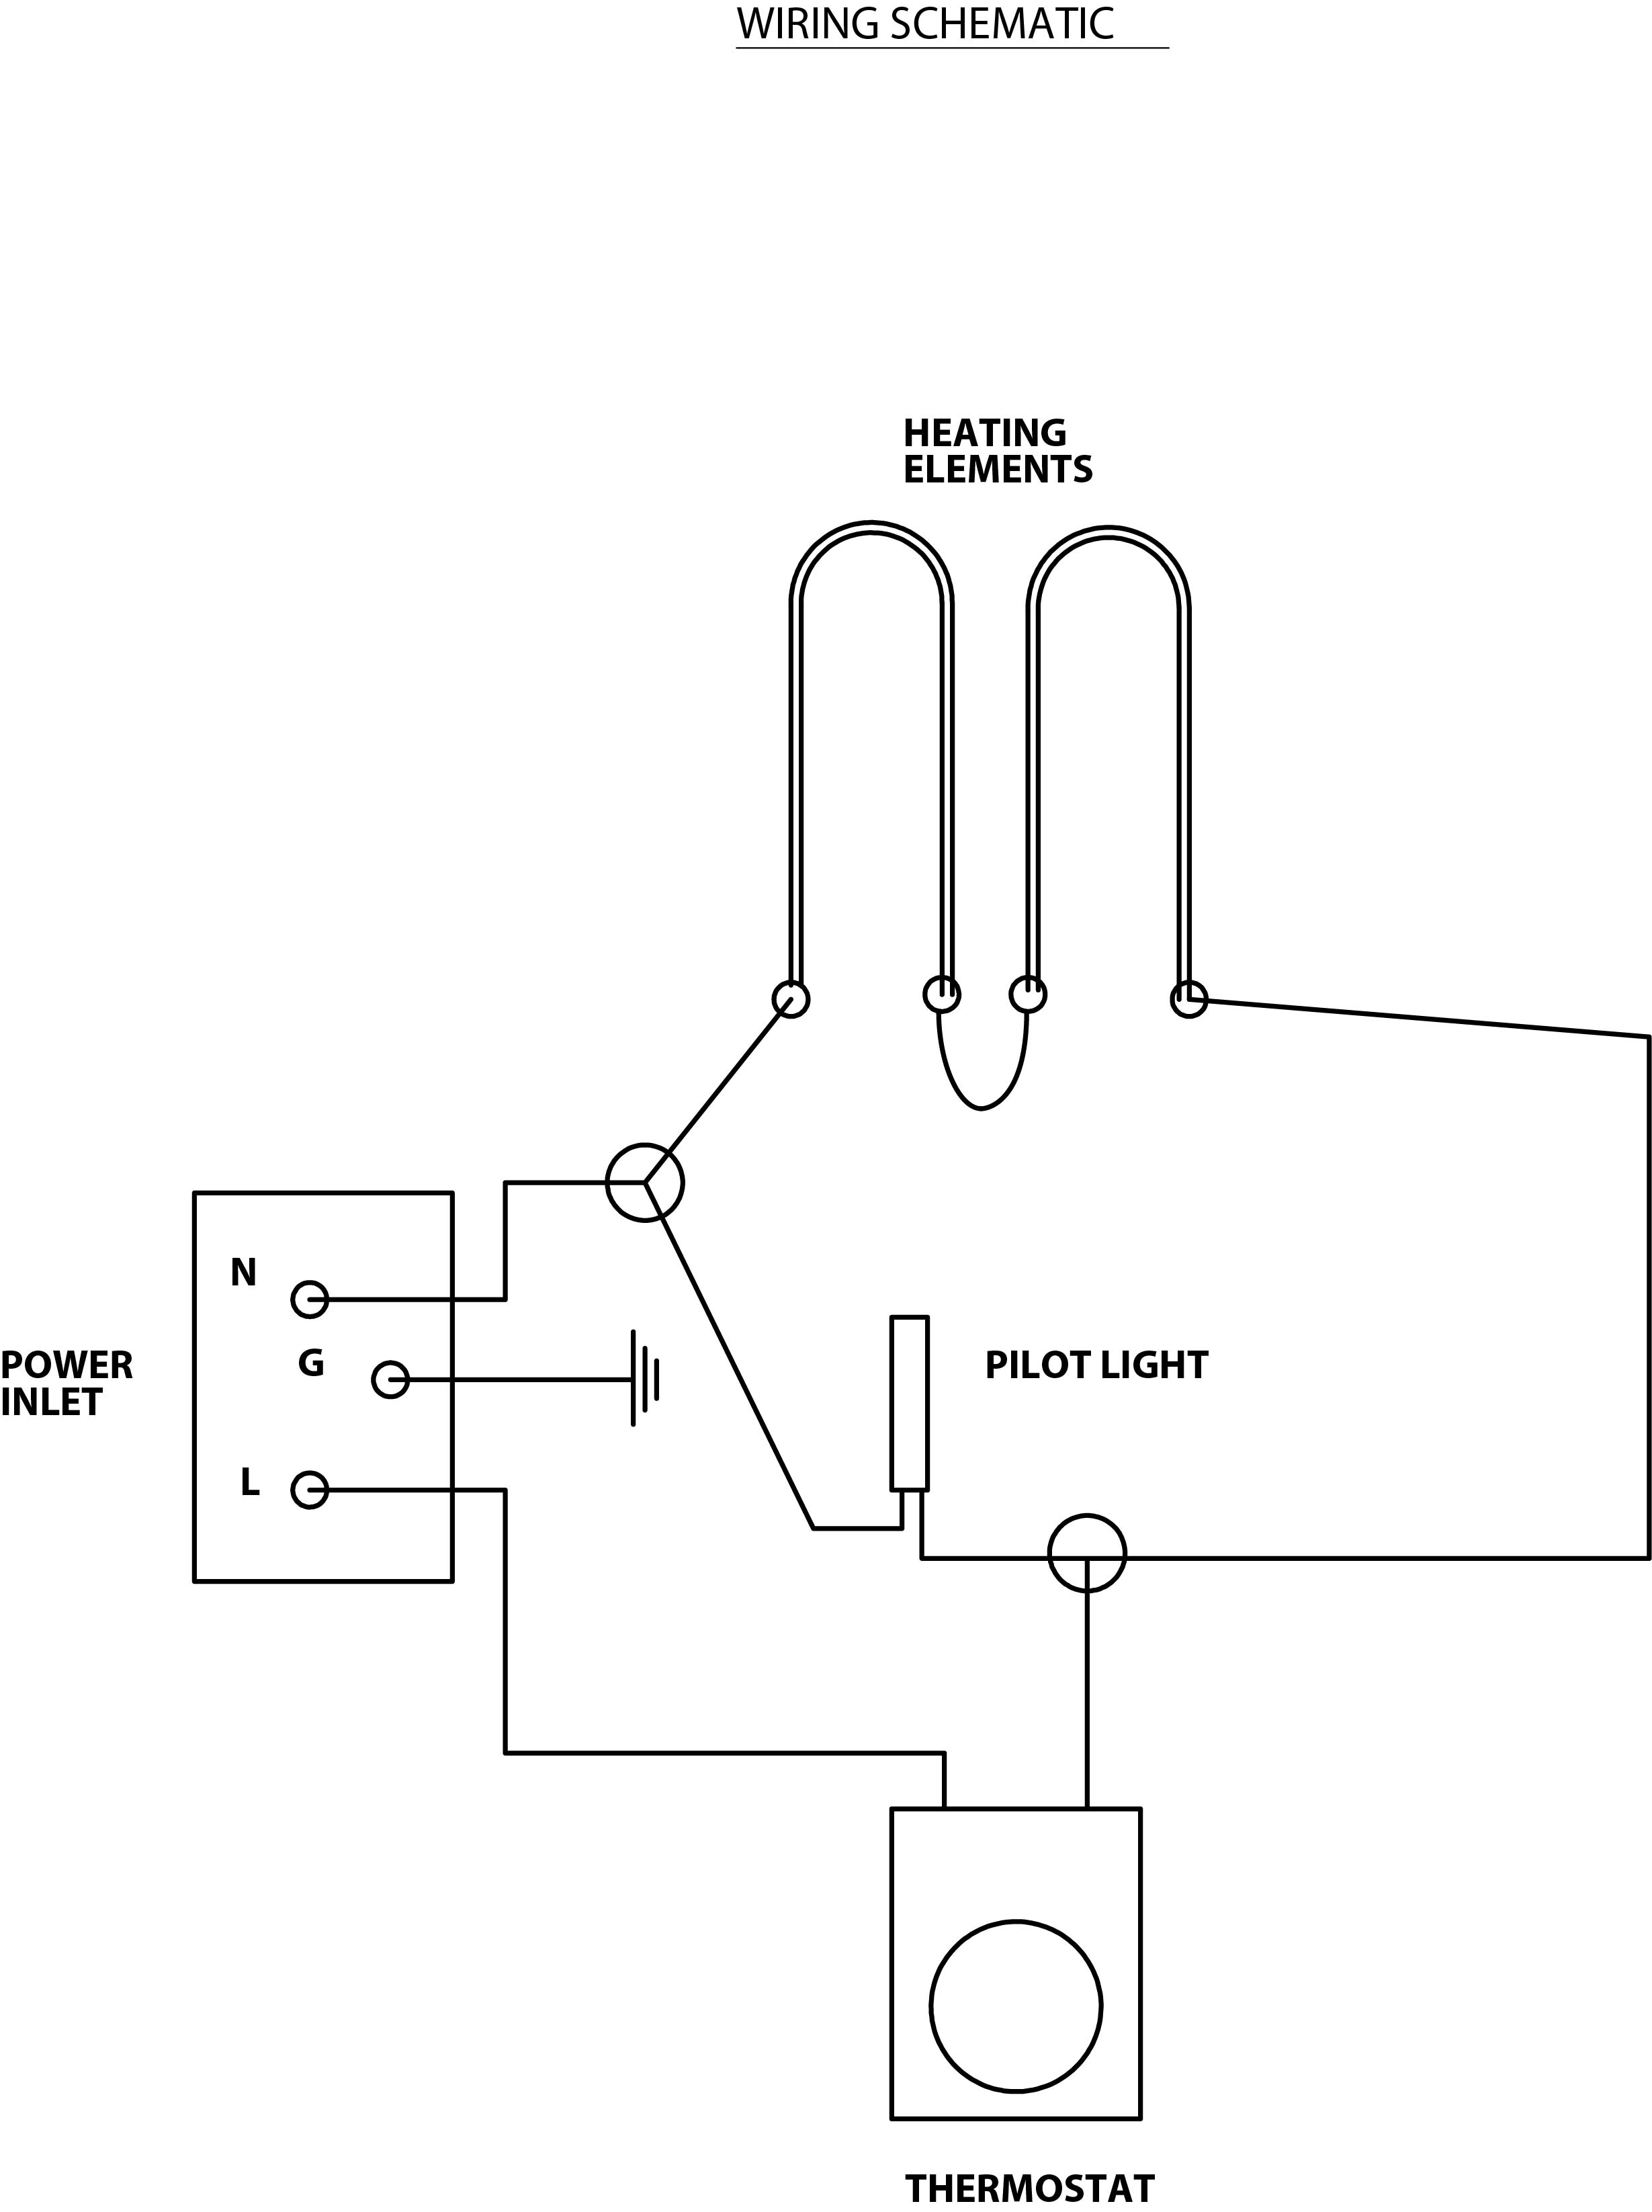 wiring a heating element  wiring  free engine image for user manual download